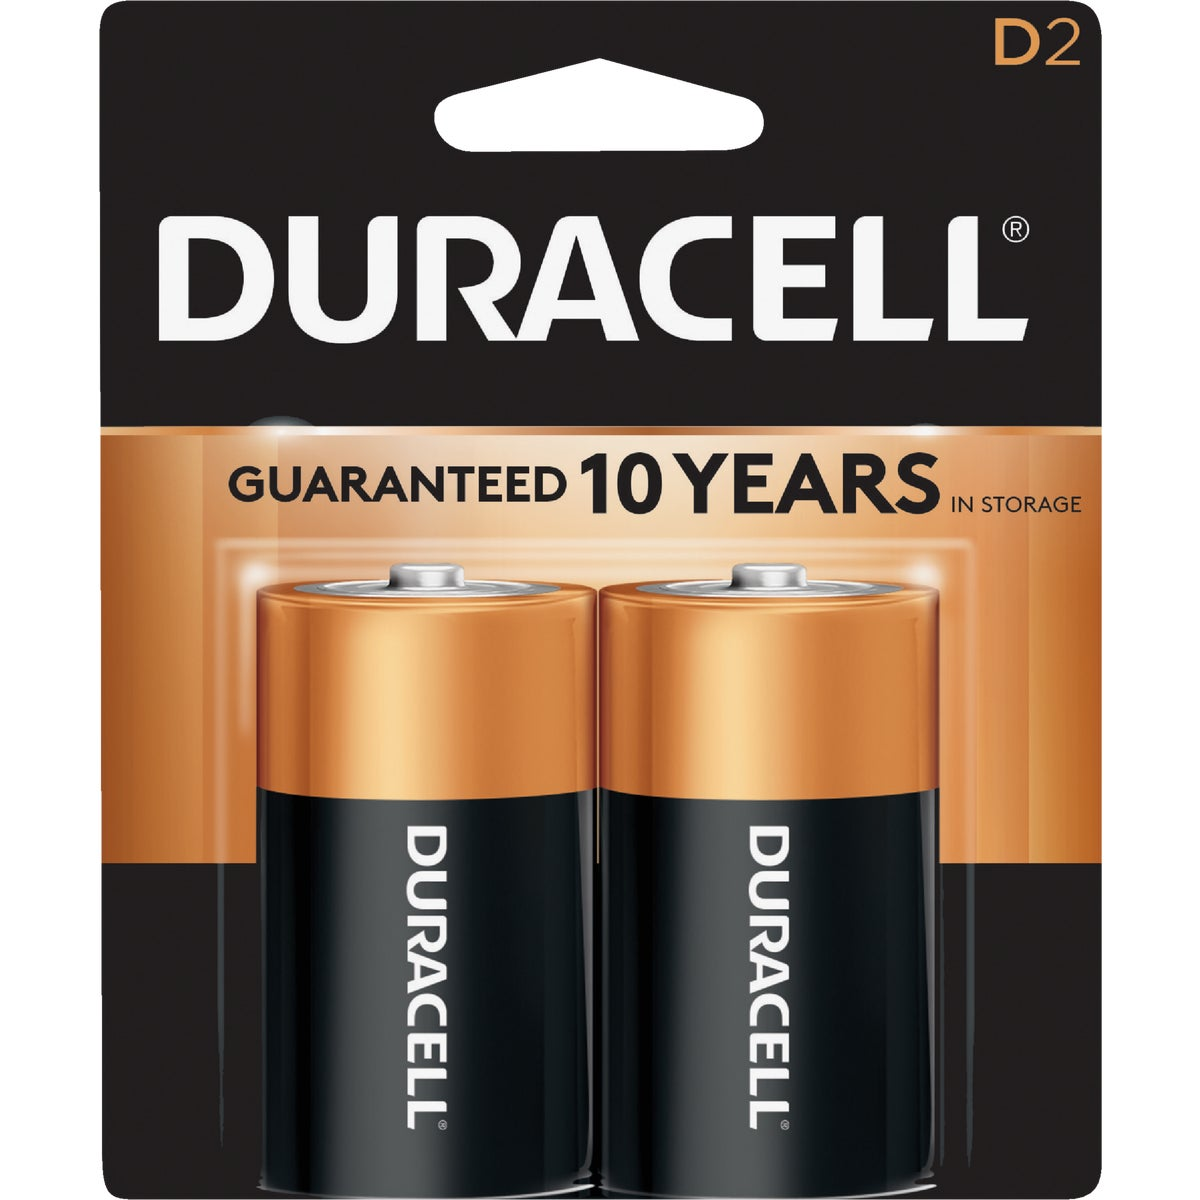 2PK D ALKALINE BATTERY - 09061 by P & G  Duracell